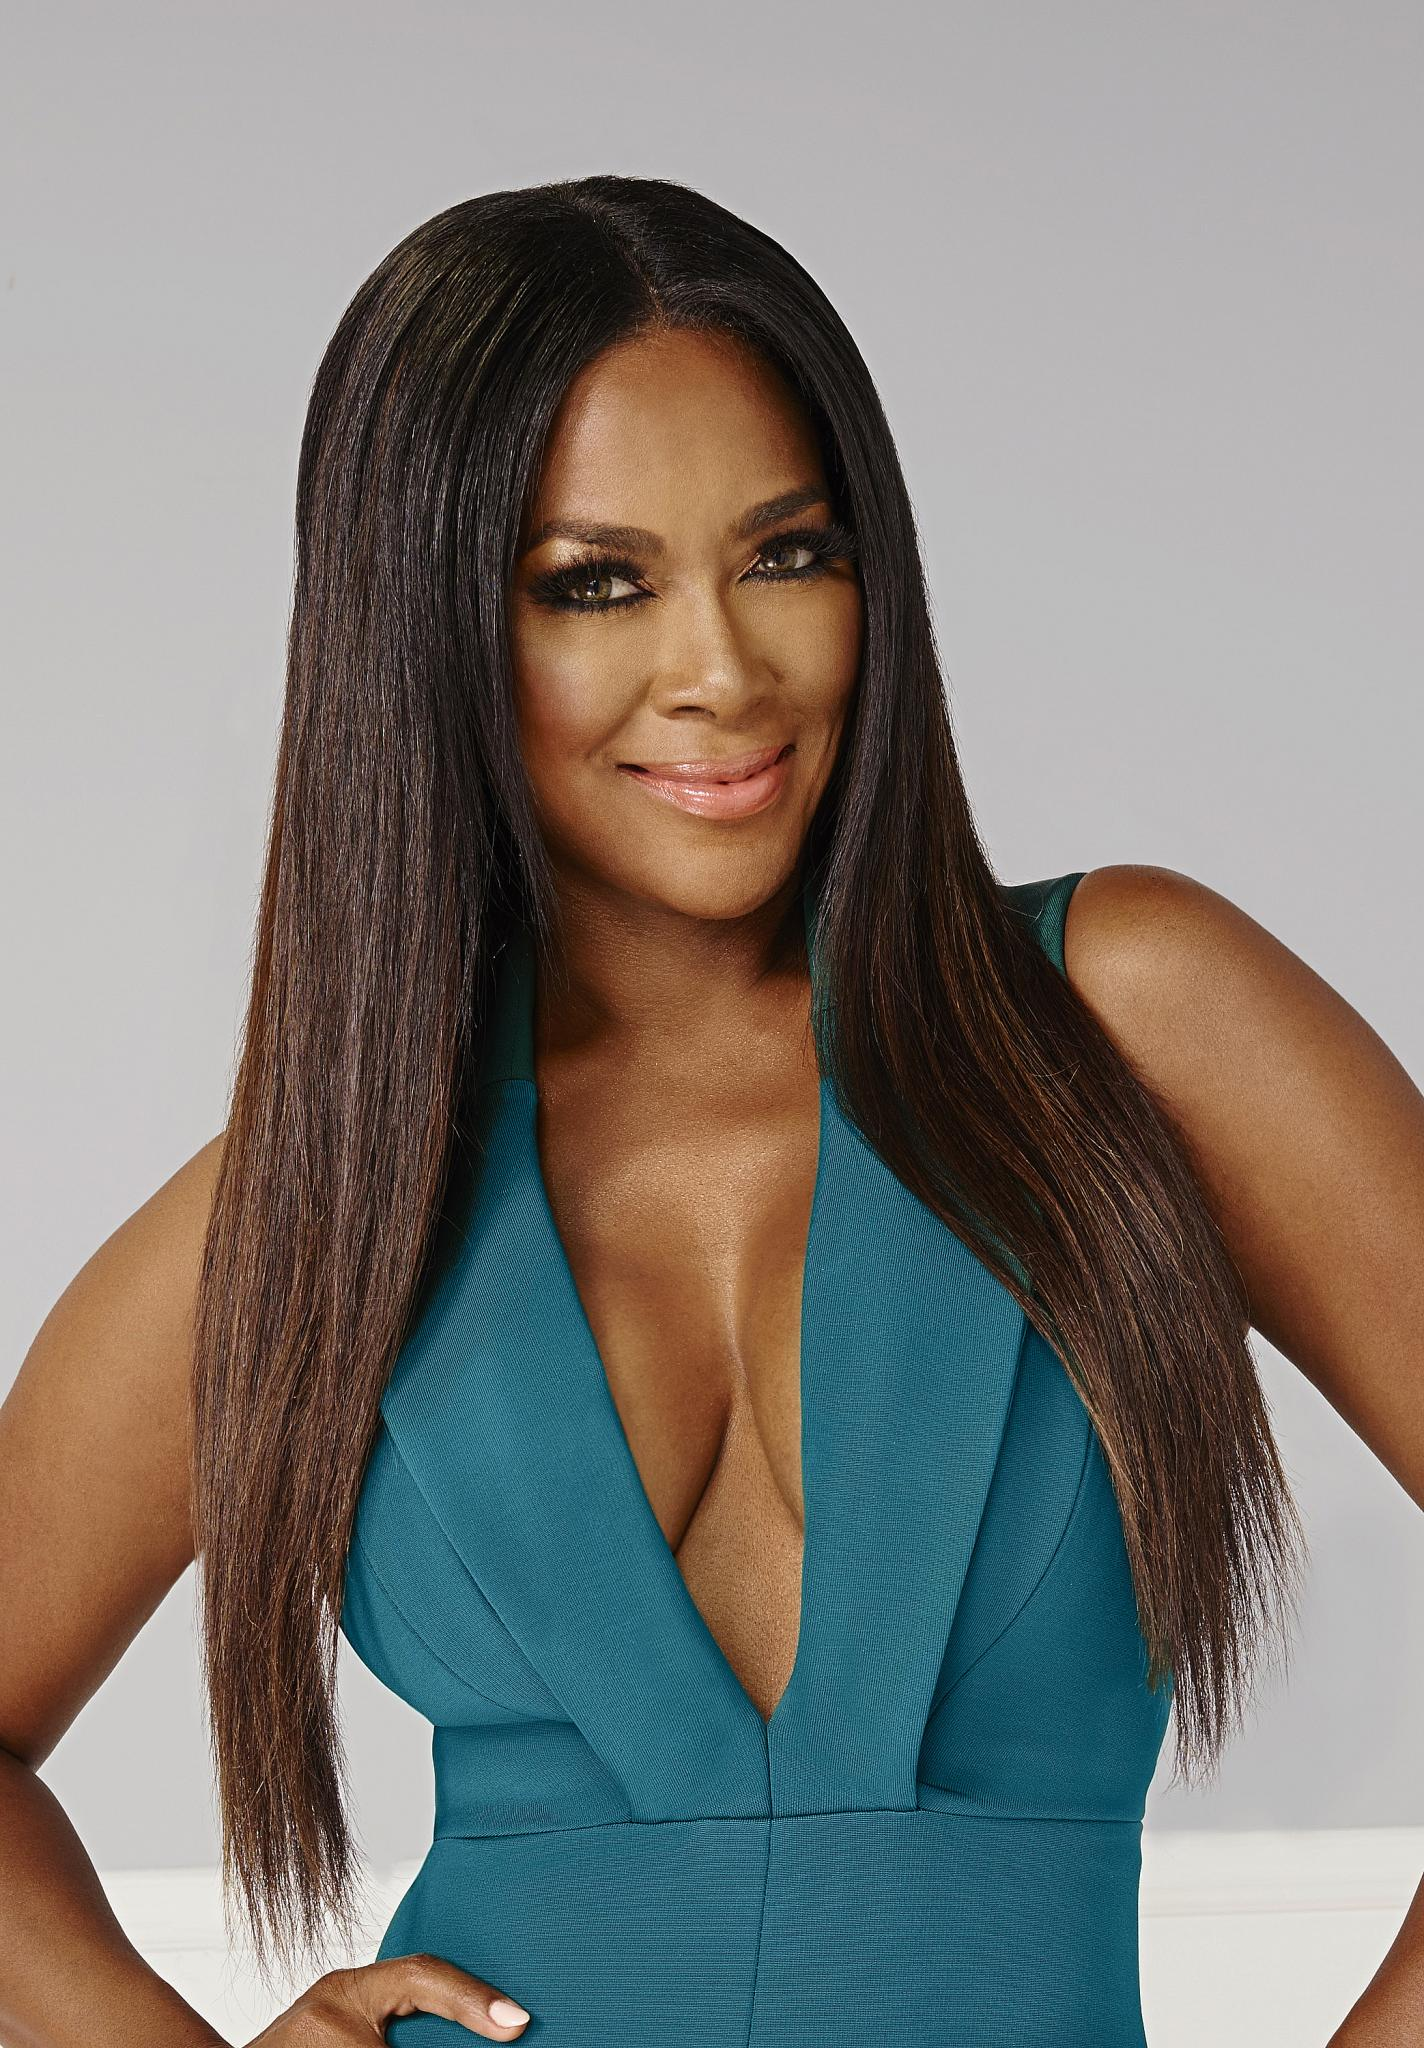 What We Know About Kenya Moore's New Husband